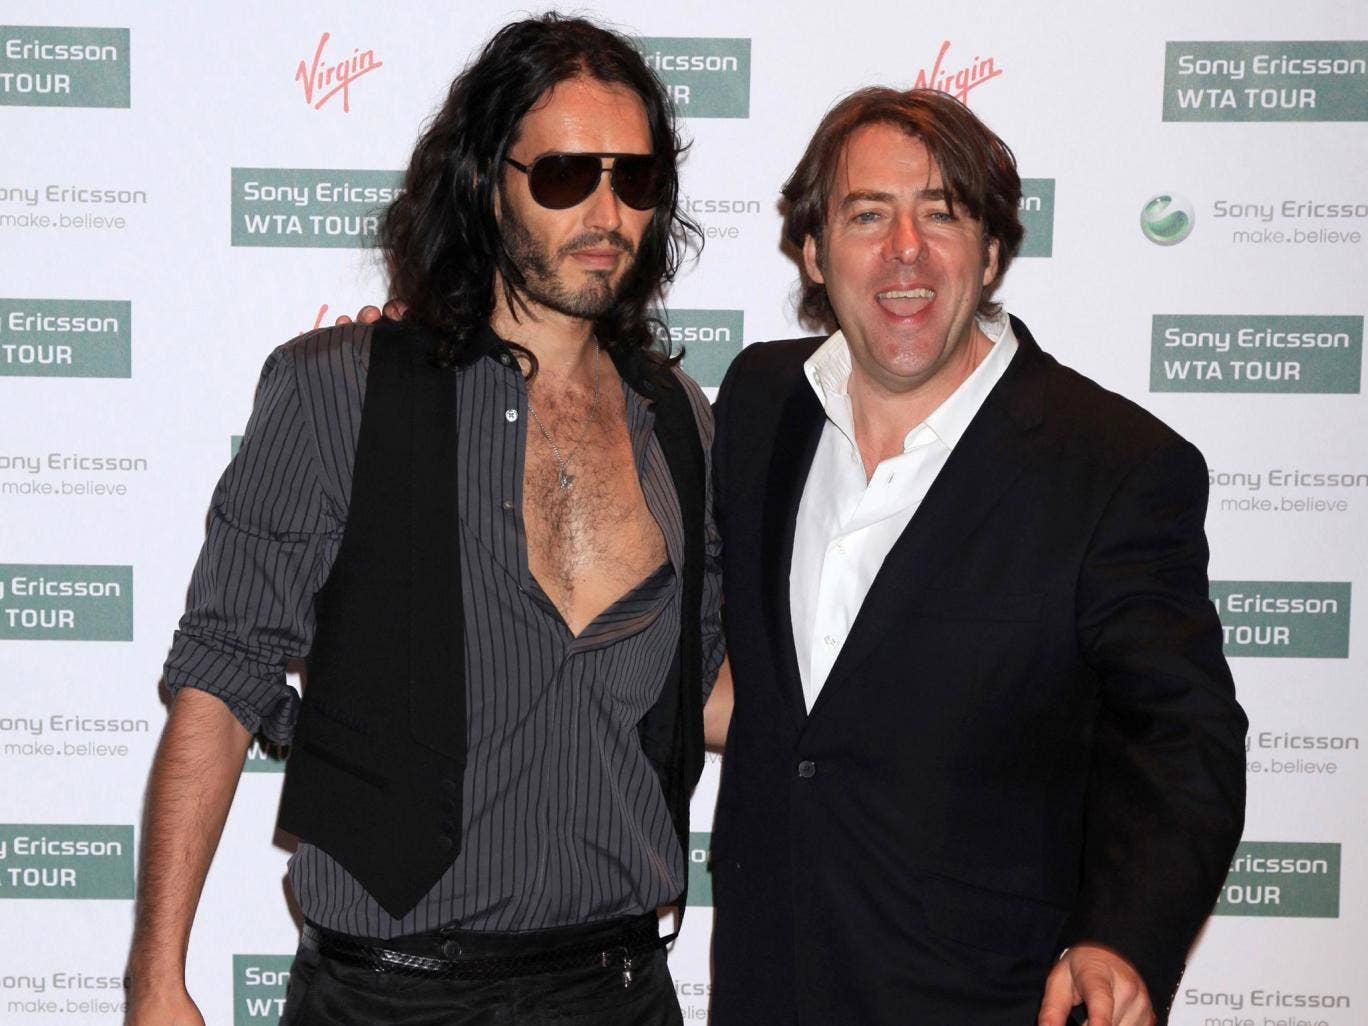 Russell Brand and Jonathan Ross have told of their regret and embarrassment about sparking the Sachsgate scandal